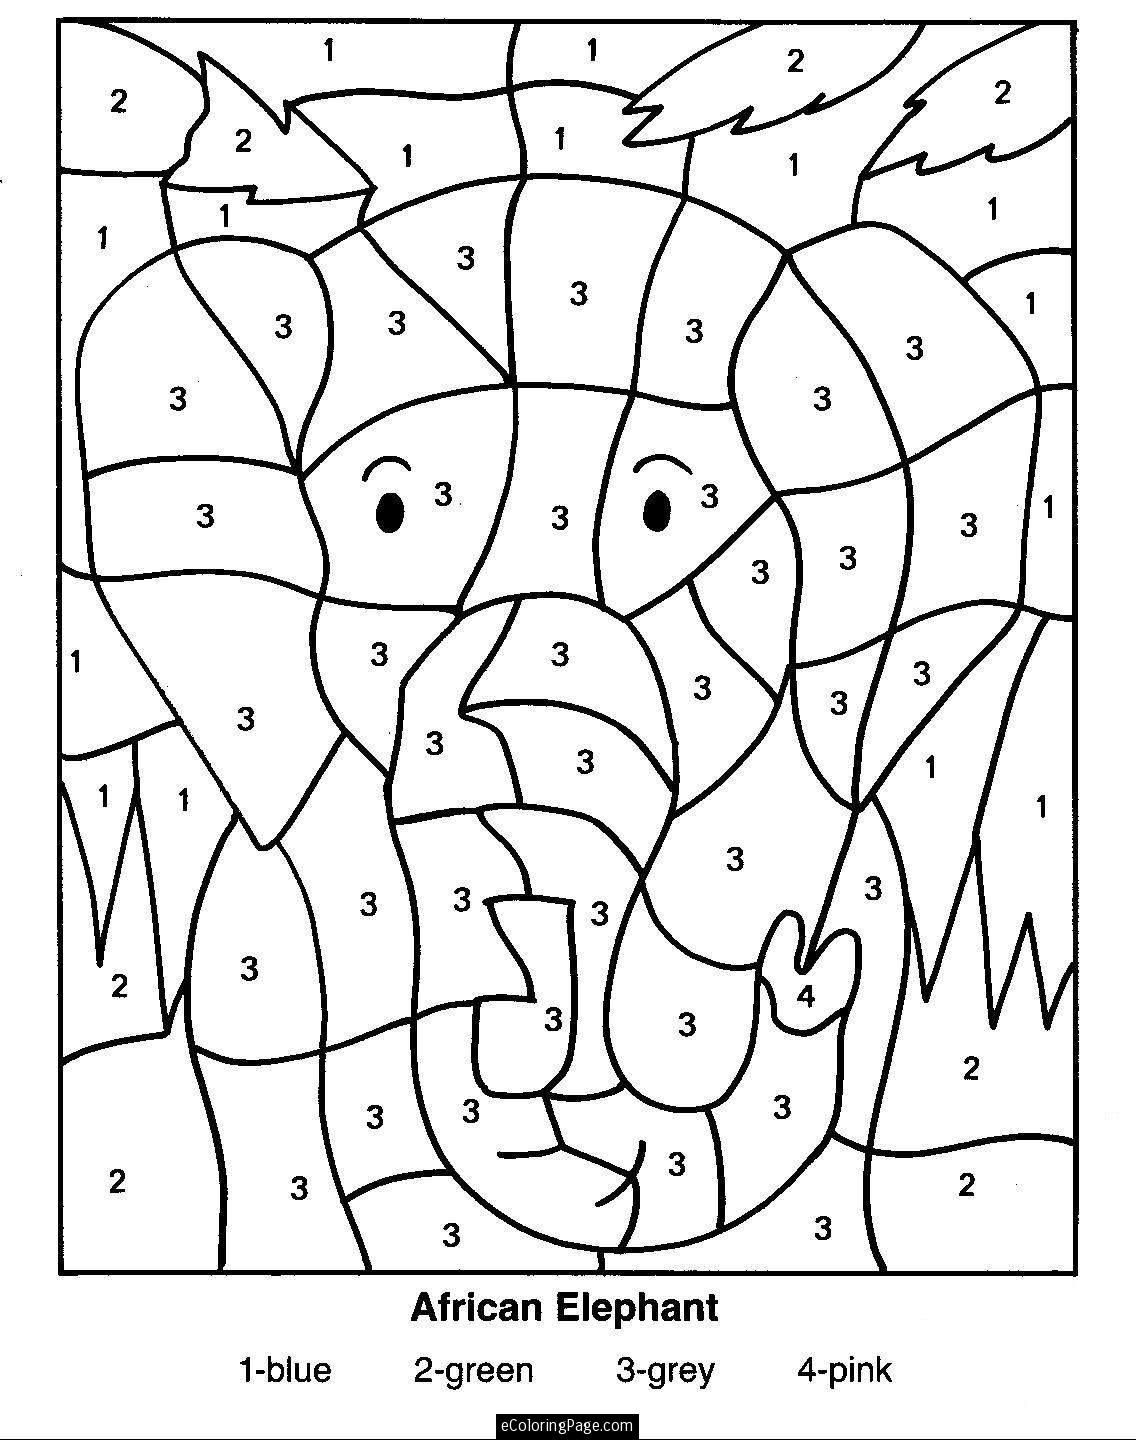 Kindergarten Color by Number Worksheets Color by Numbers Elephant Coloring Pages for Kids Printable